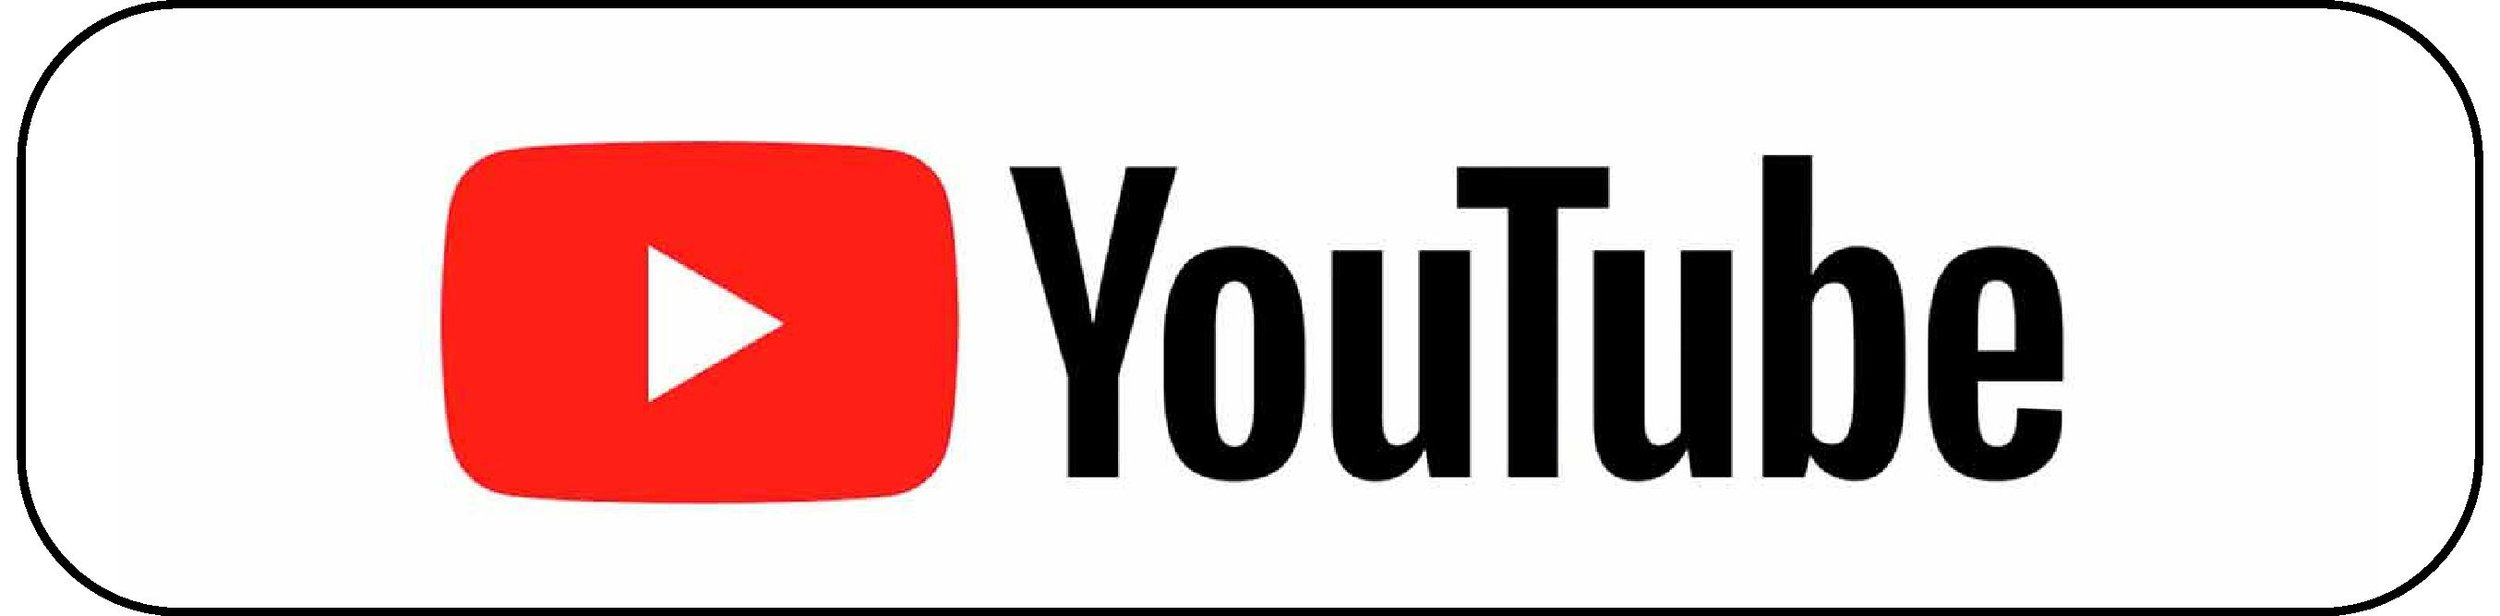 Youtube-page-001.jpg